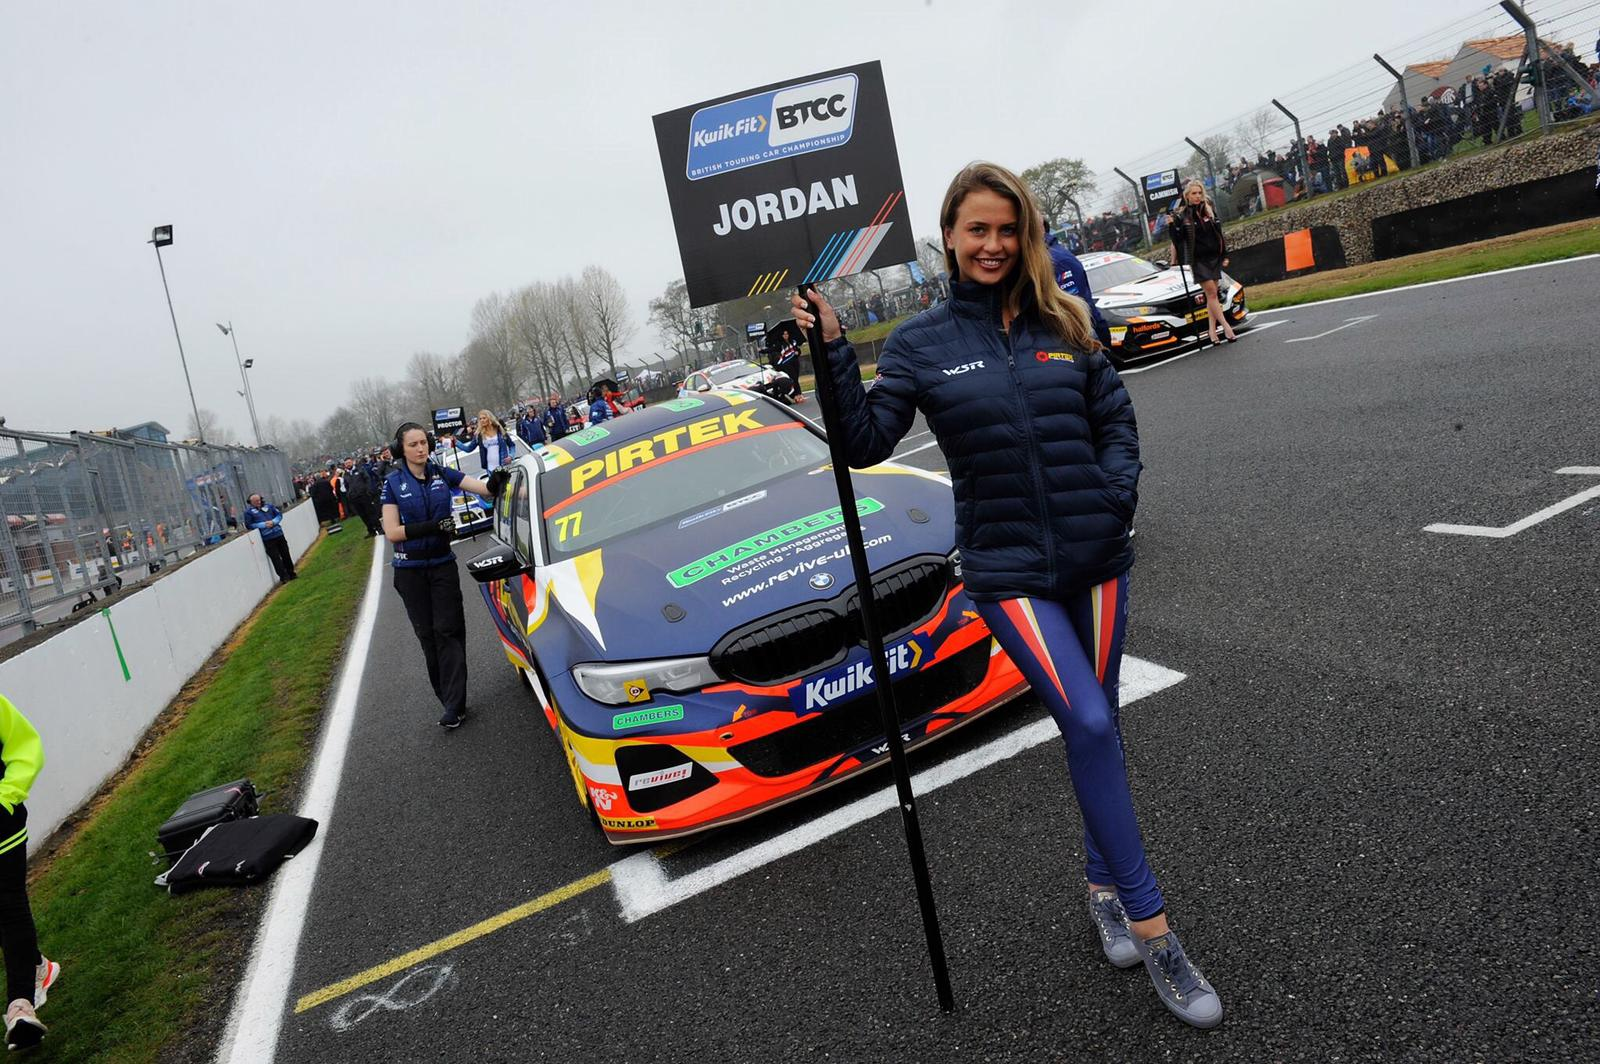 BMW Pirtek Racing BTCC at Brands Hatch BTCC – 7th April 19